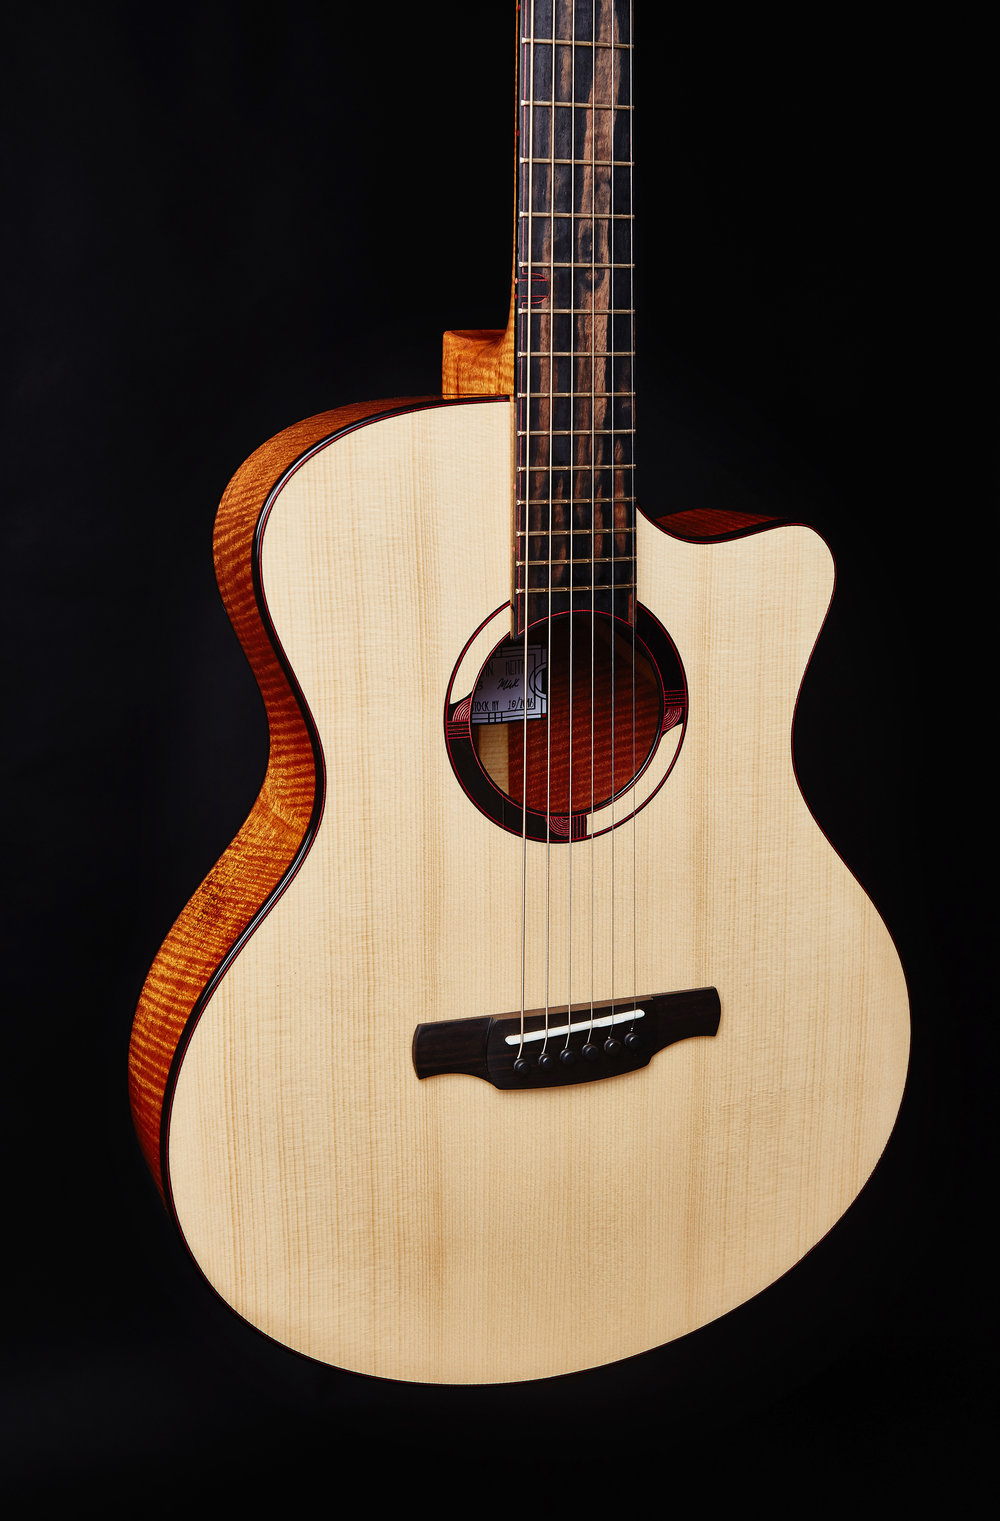 - #63:Curly Mahogany, Adirondack Spruce, Multicolored Ebony